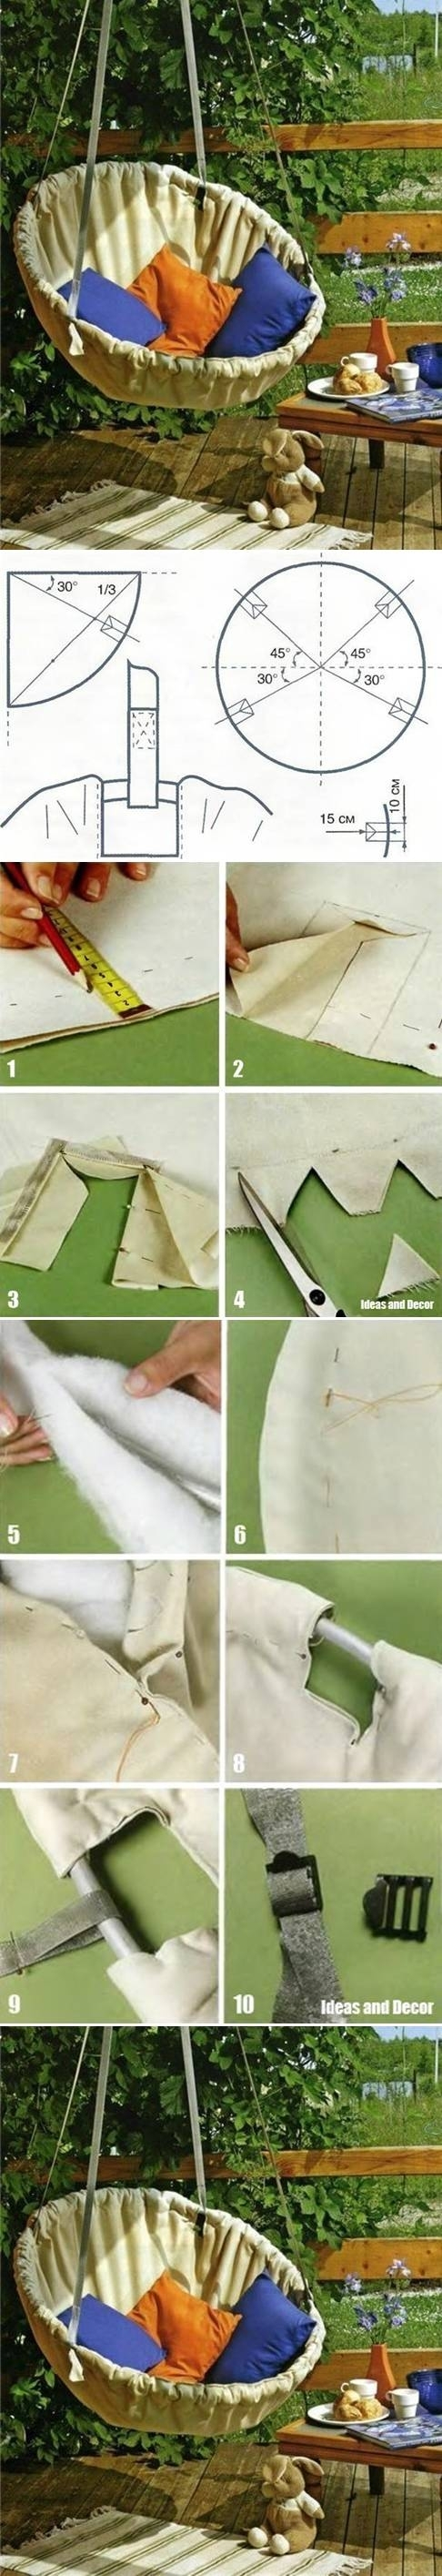 hammock chair diy ~ diy hammock pictures, photos, and images for facebook